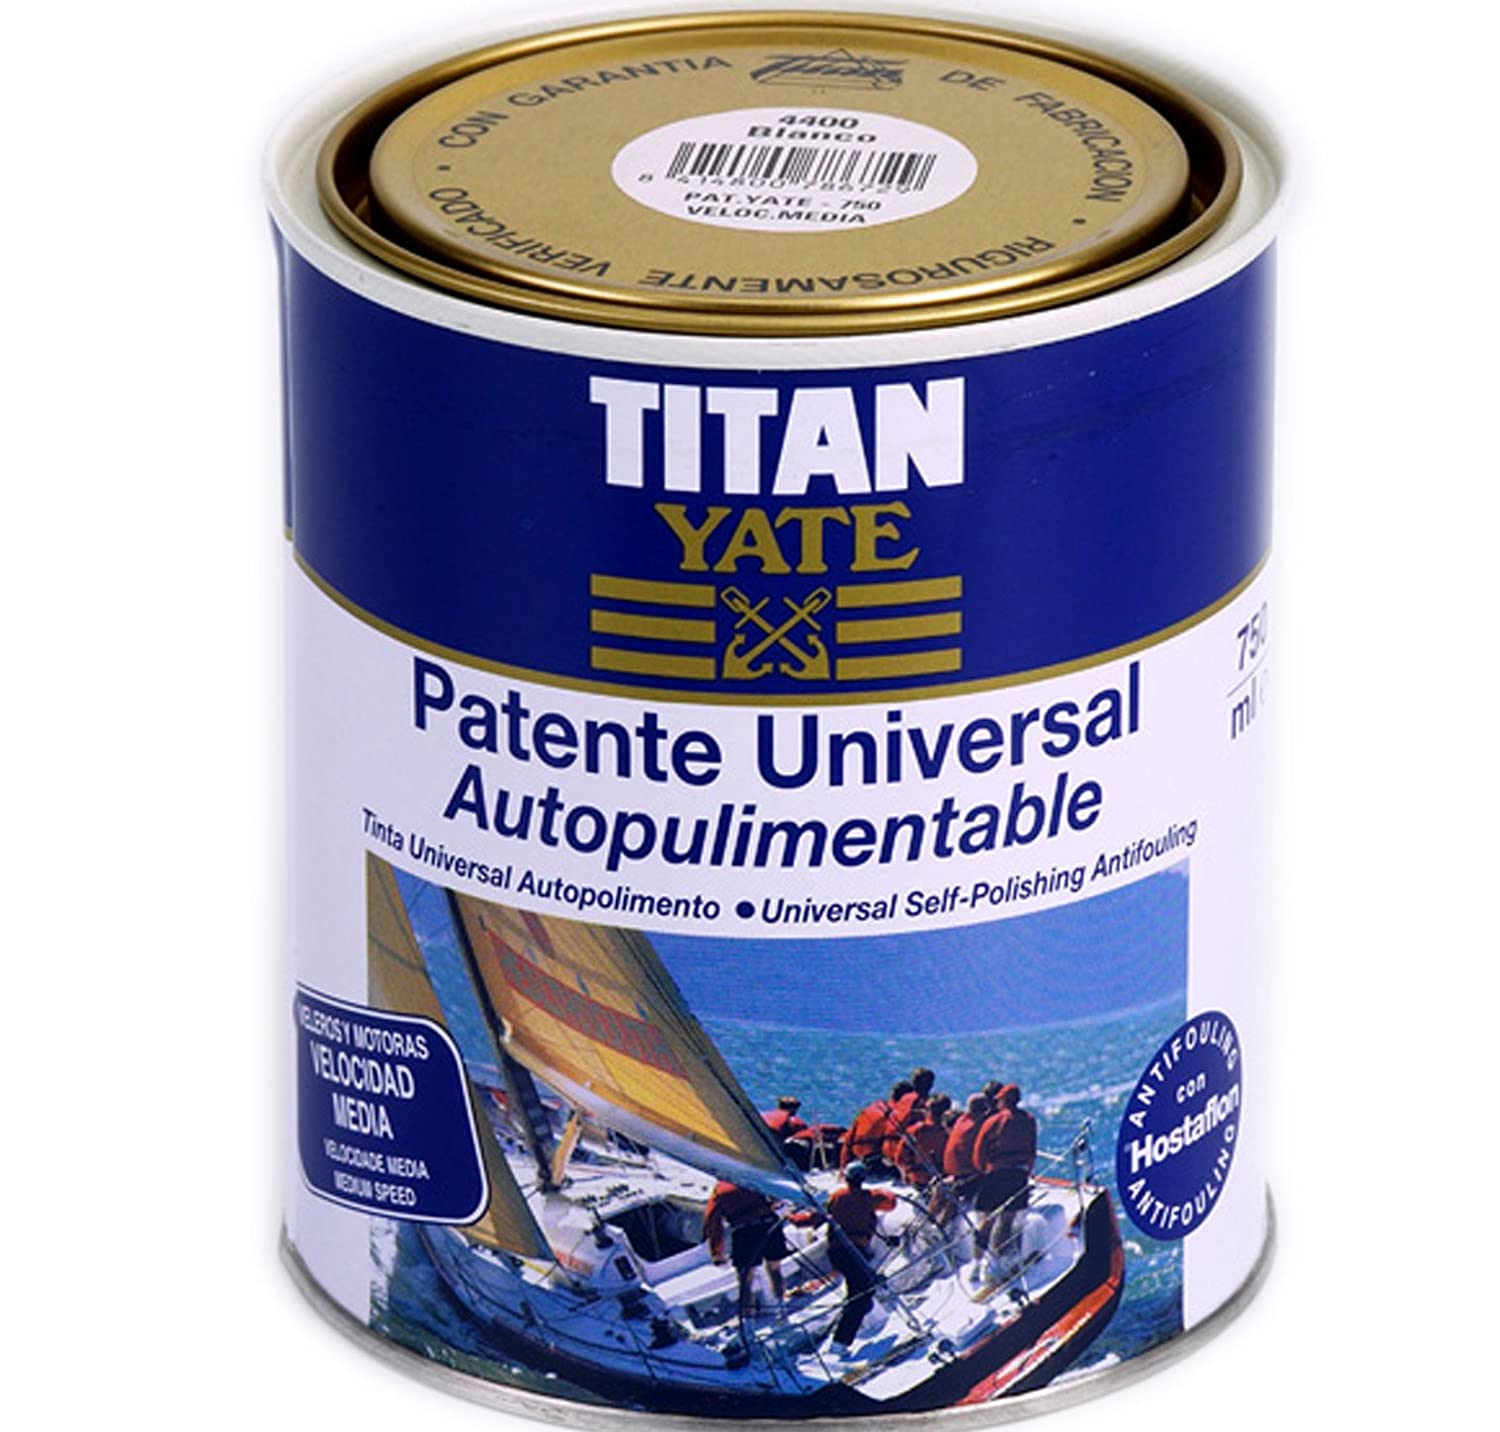 TITAN - Patente autopulimentable velocidad media mate sedoso azul intenso 750ml Titan Yate